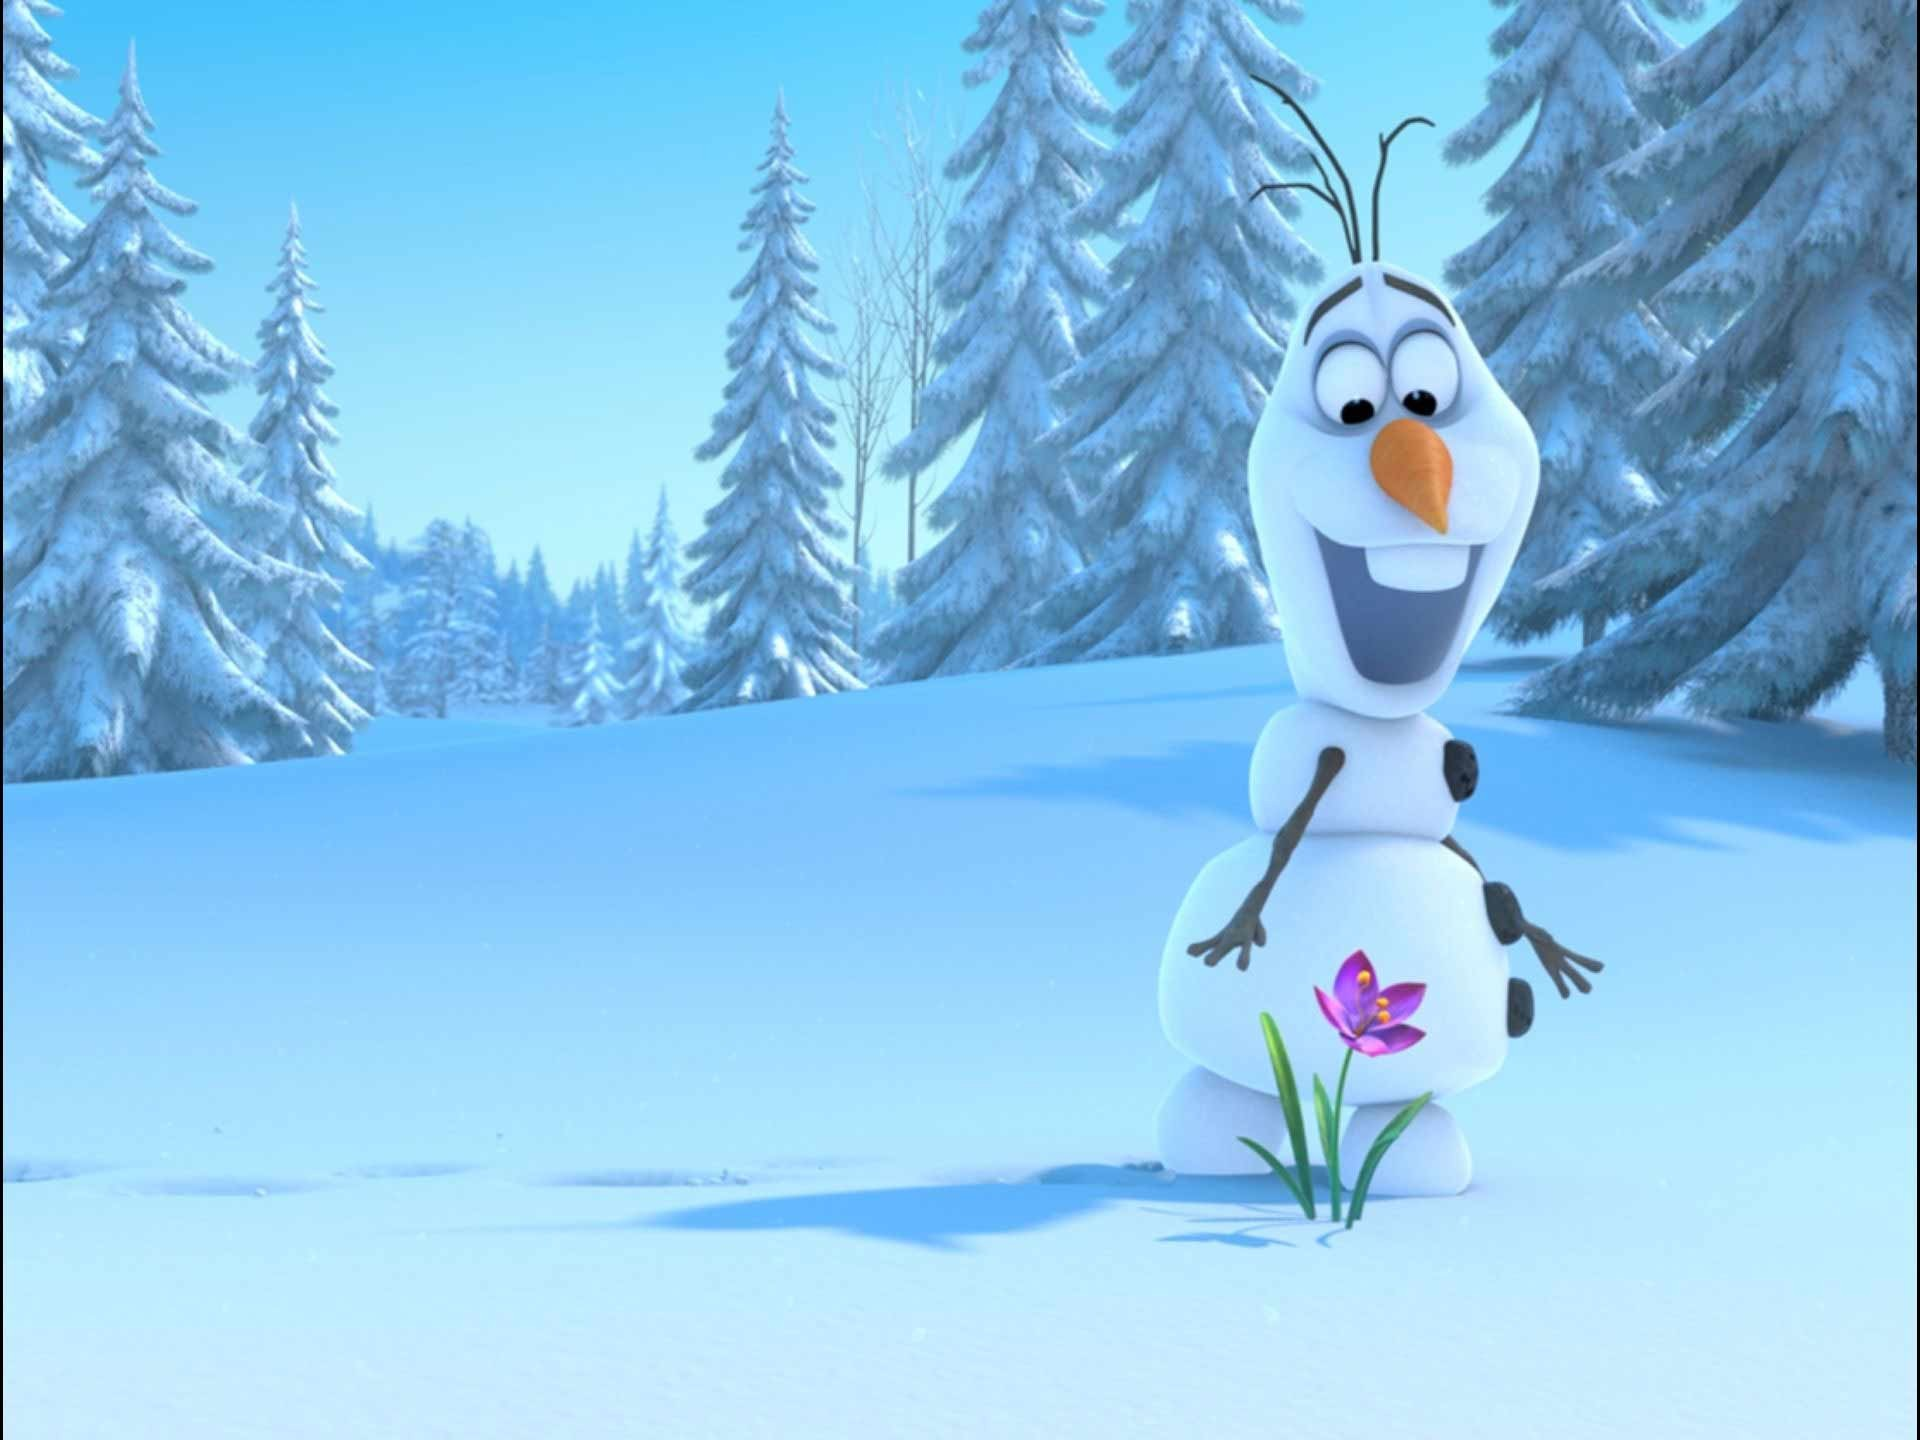 backgrounds-anna-frozen-movie-wallpapers-free-disney .